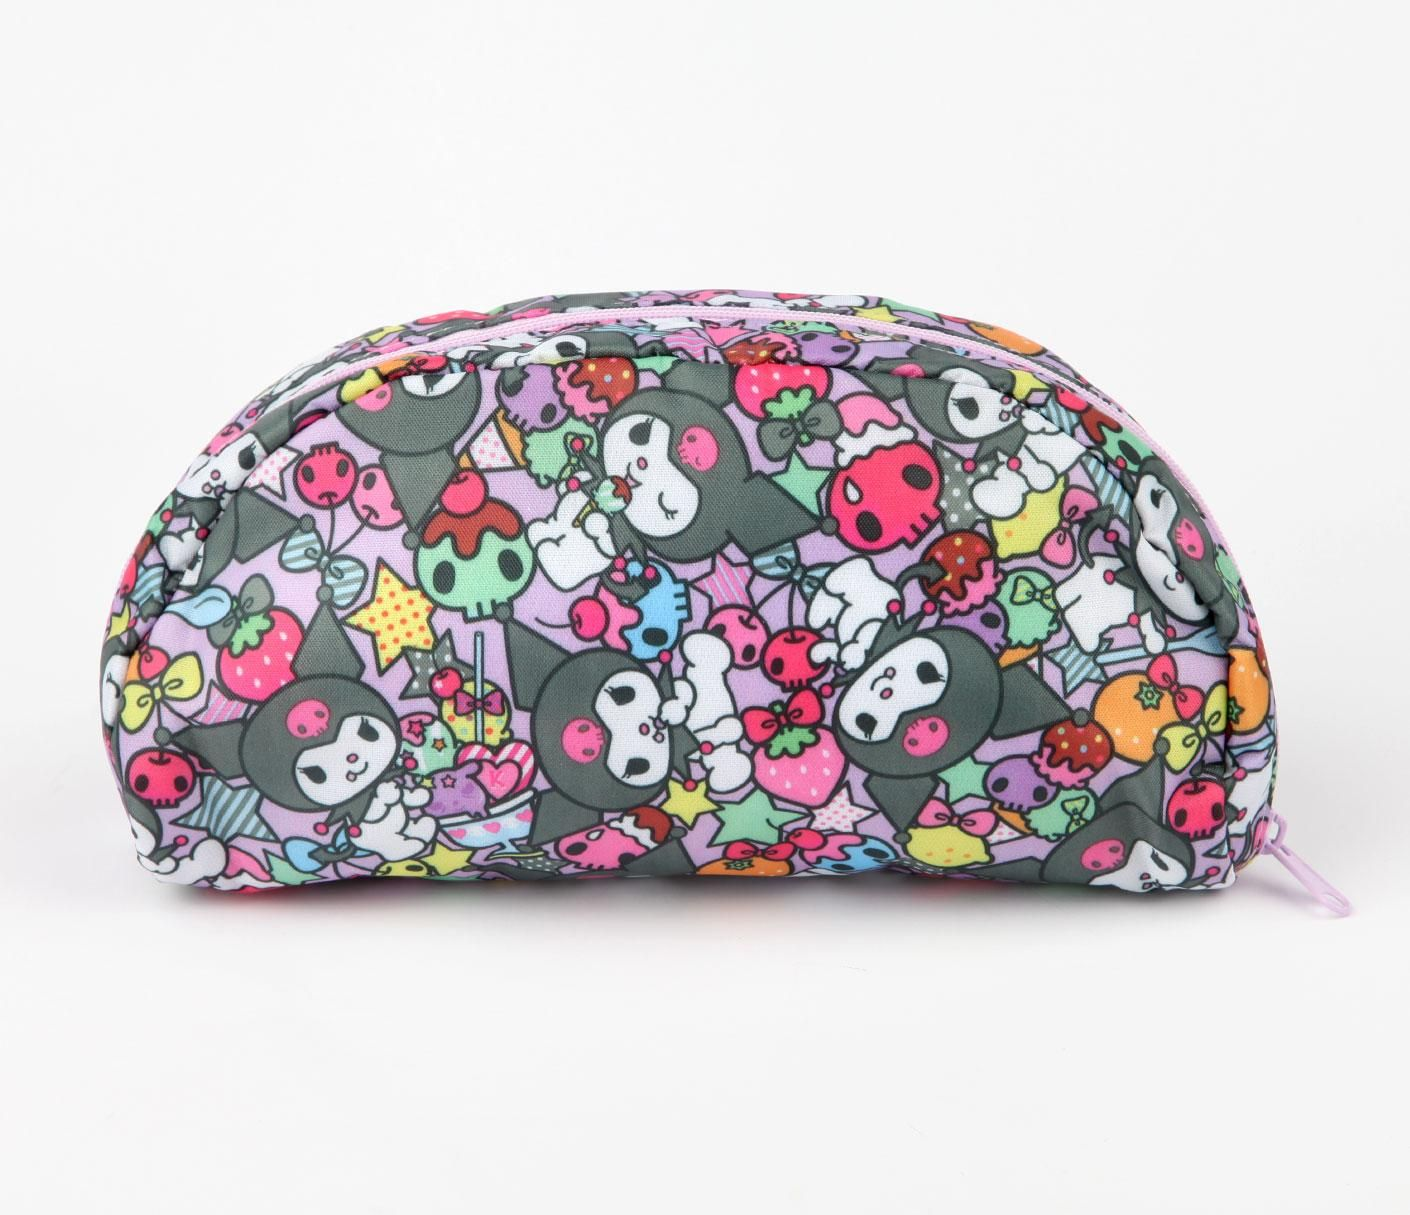 42c98962f Kuromi Pencil Case: Playtime Pen Case, Cute Makeup Bags, Carry All Bag,